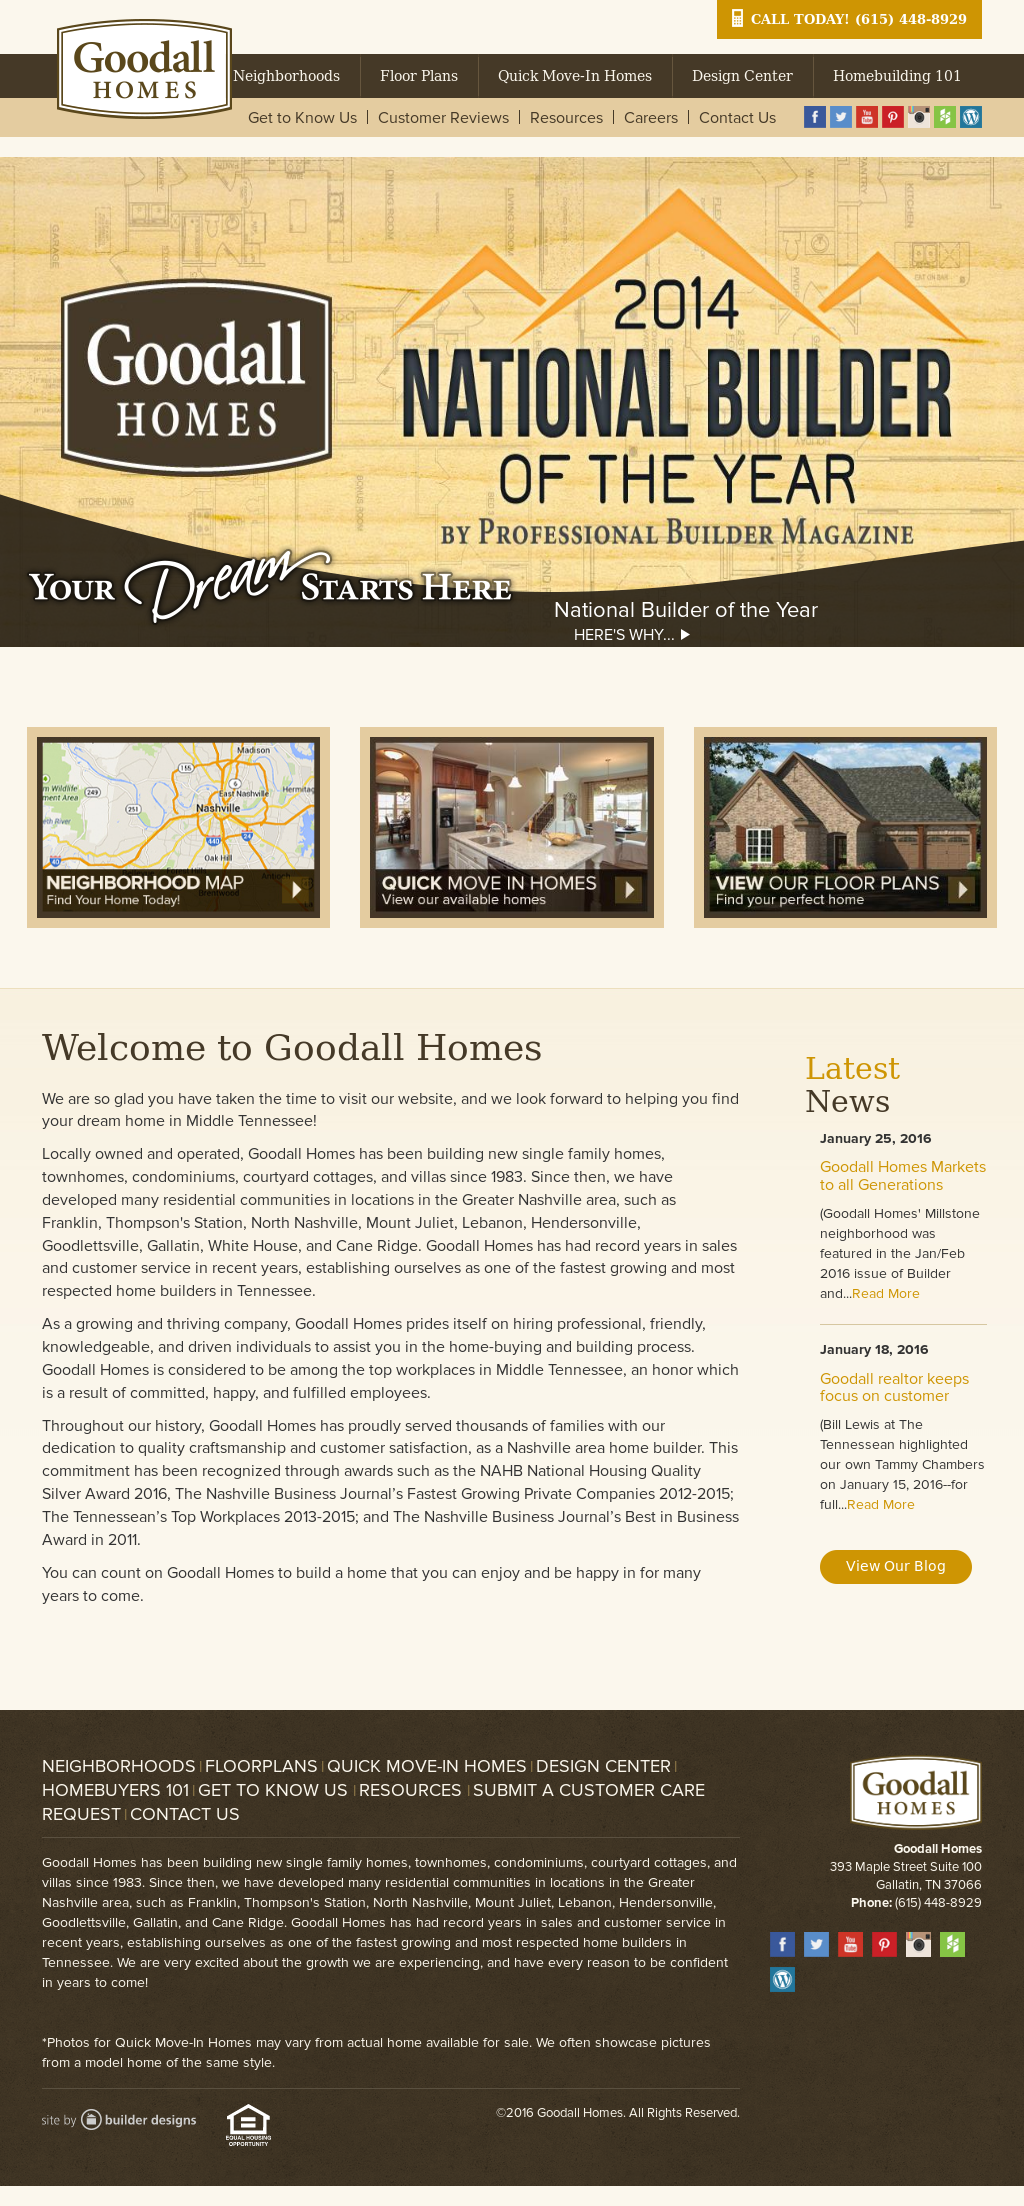 Awesome Goodall Homes Design Center Gallery - Decoration Design ...